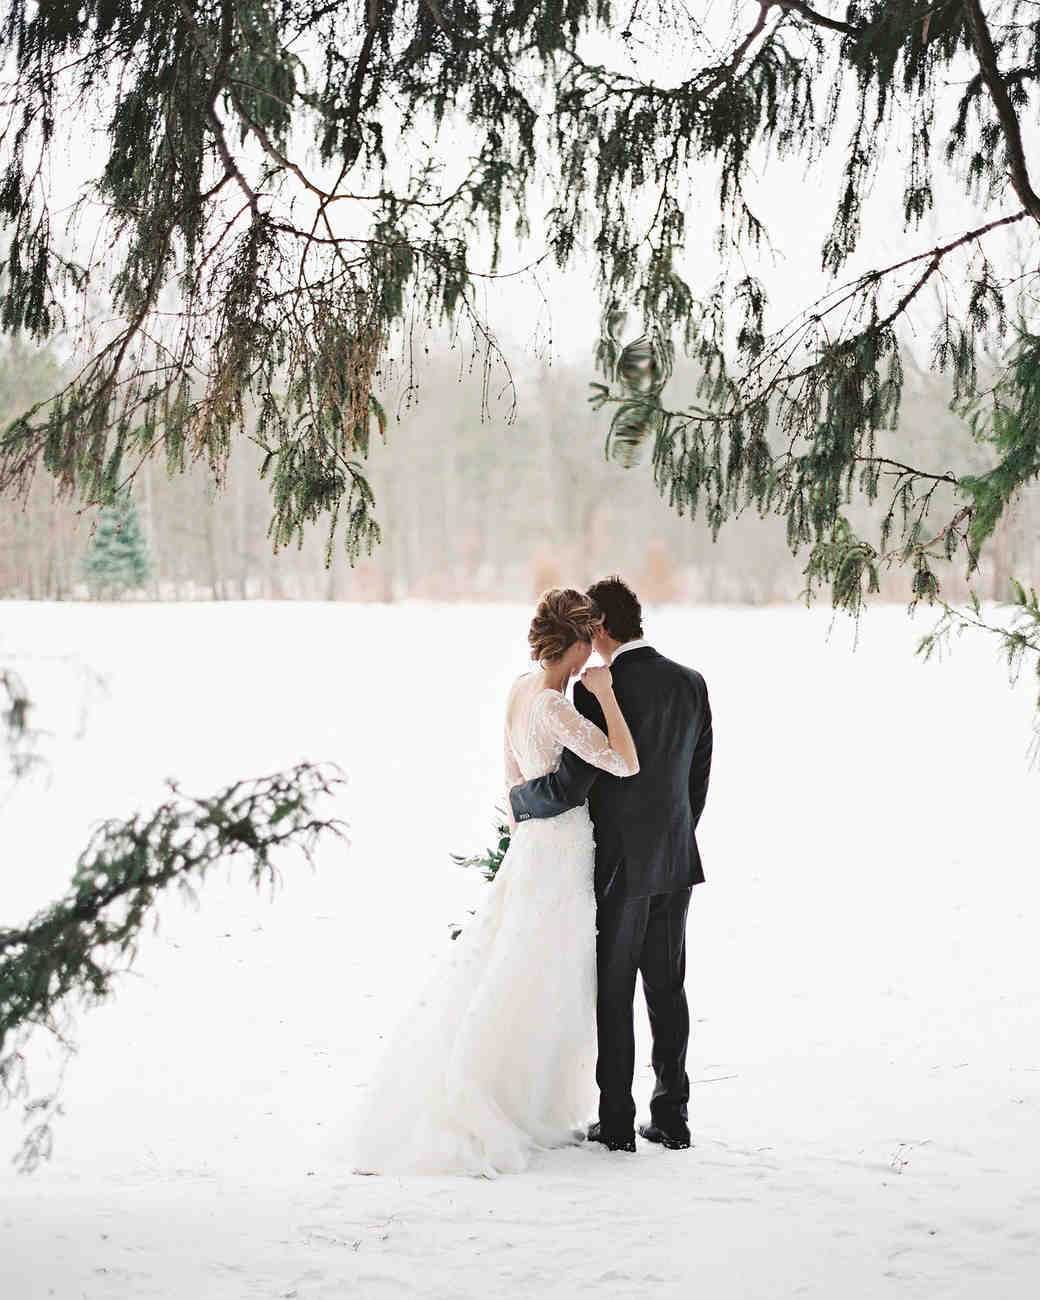 Winter Weddings: 34 Snowy Wedding Photos That Will Make You Want To Get